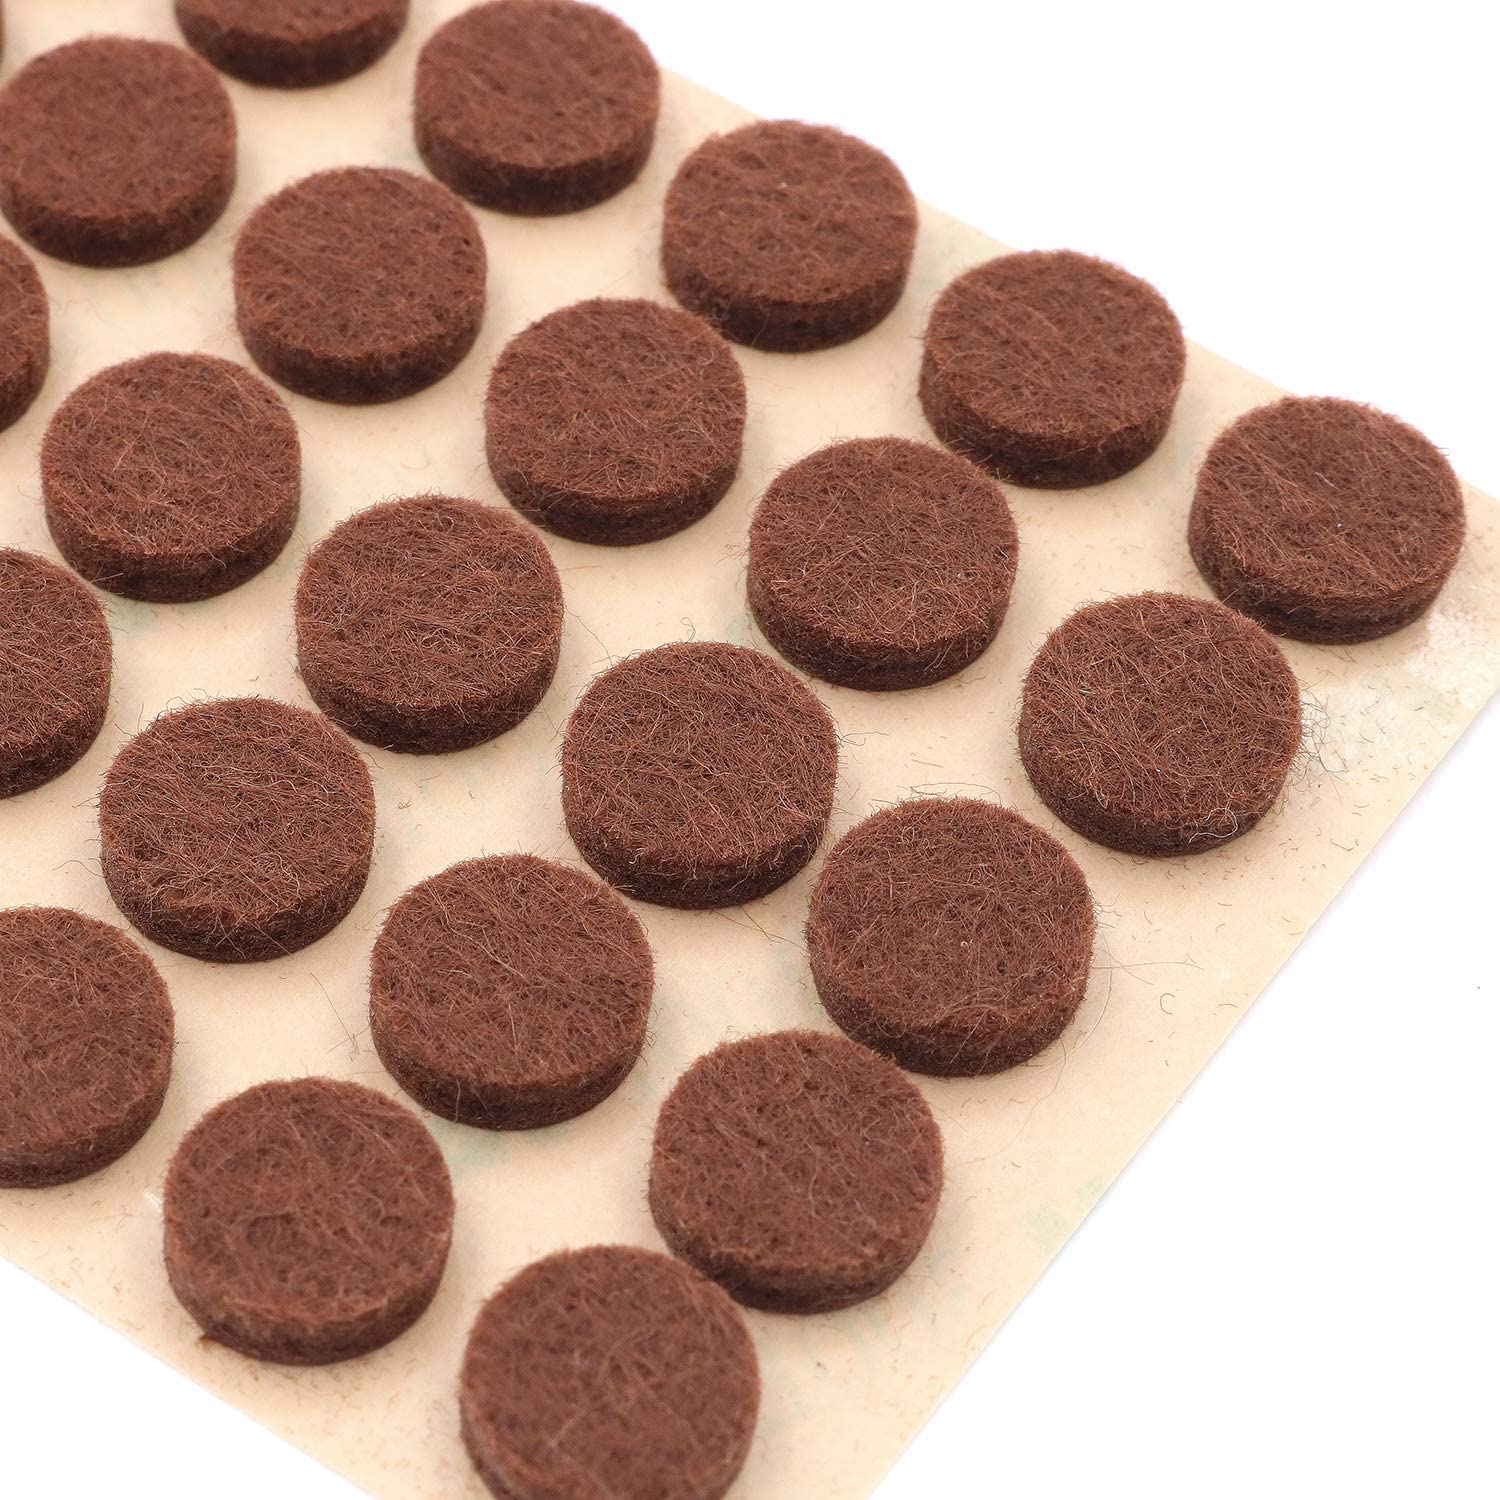 """Furniture Felt Pads 3/8"""" (10mm) Diameter Round 3M Self Adhesive Protects Kitchen Cabinets, Drawers, Desks and Furniture Against Bumps and Scratches 100 Pack - Mocha (Medium Brown)"""